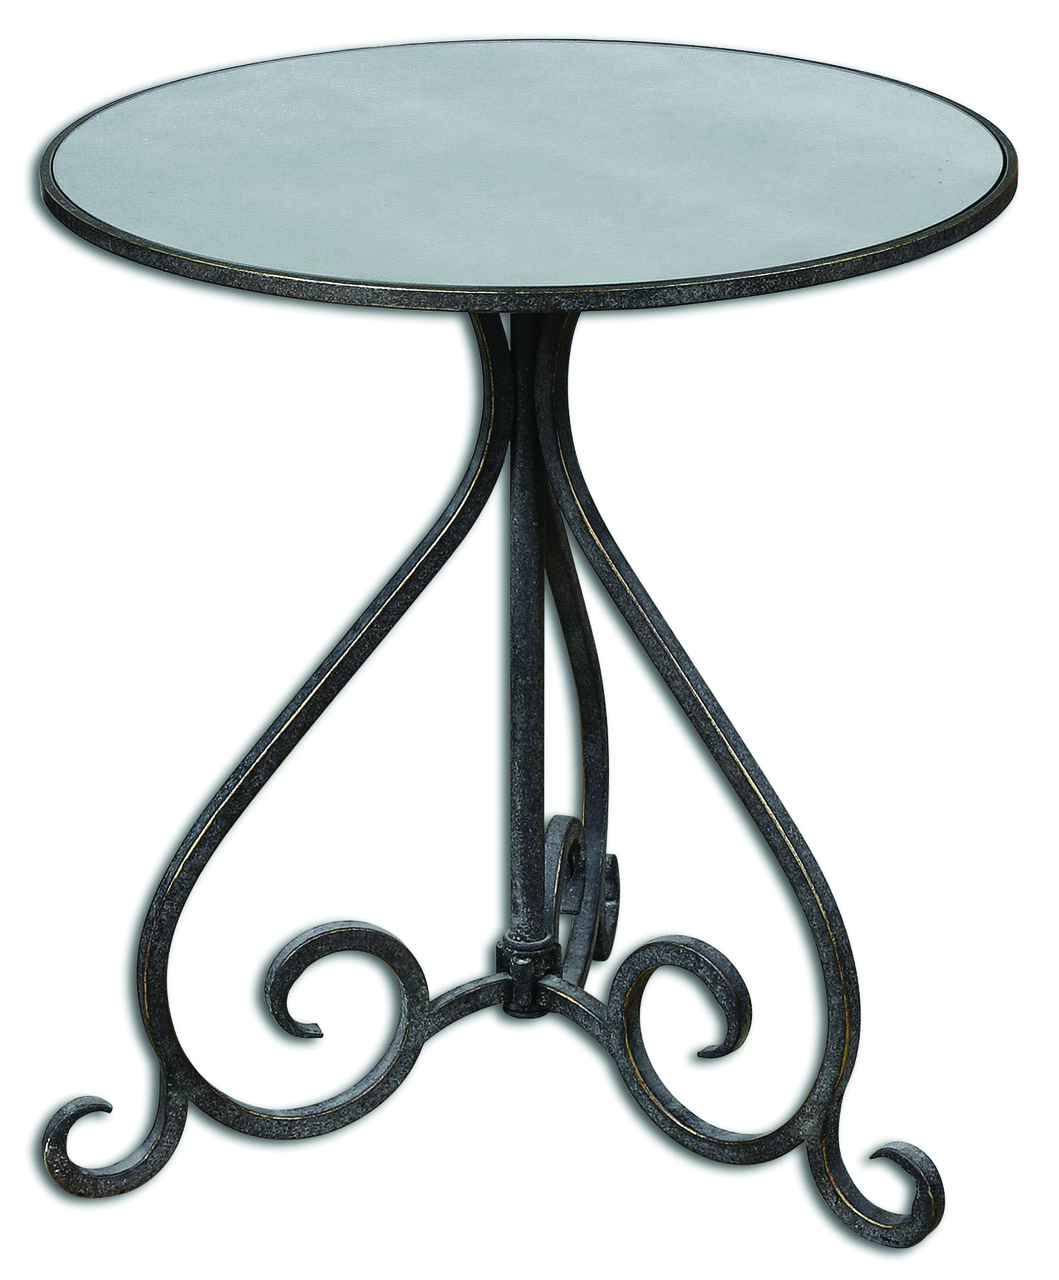 MB92 Poloa Accent Table Mindy Browne €239.95